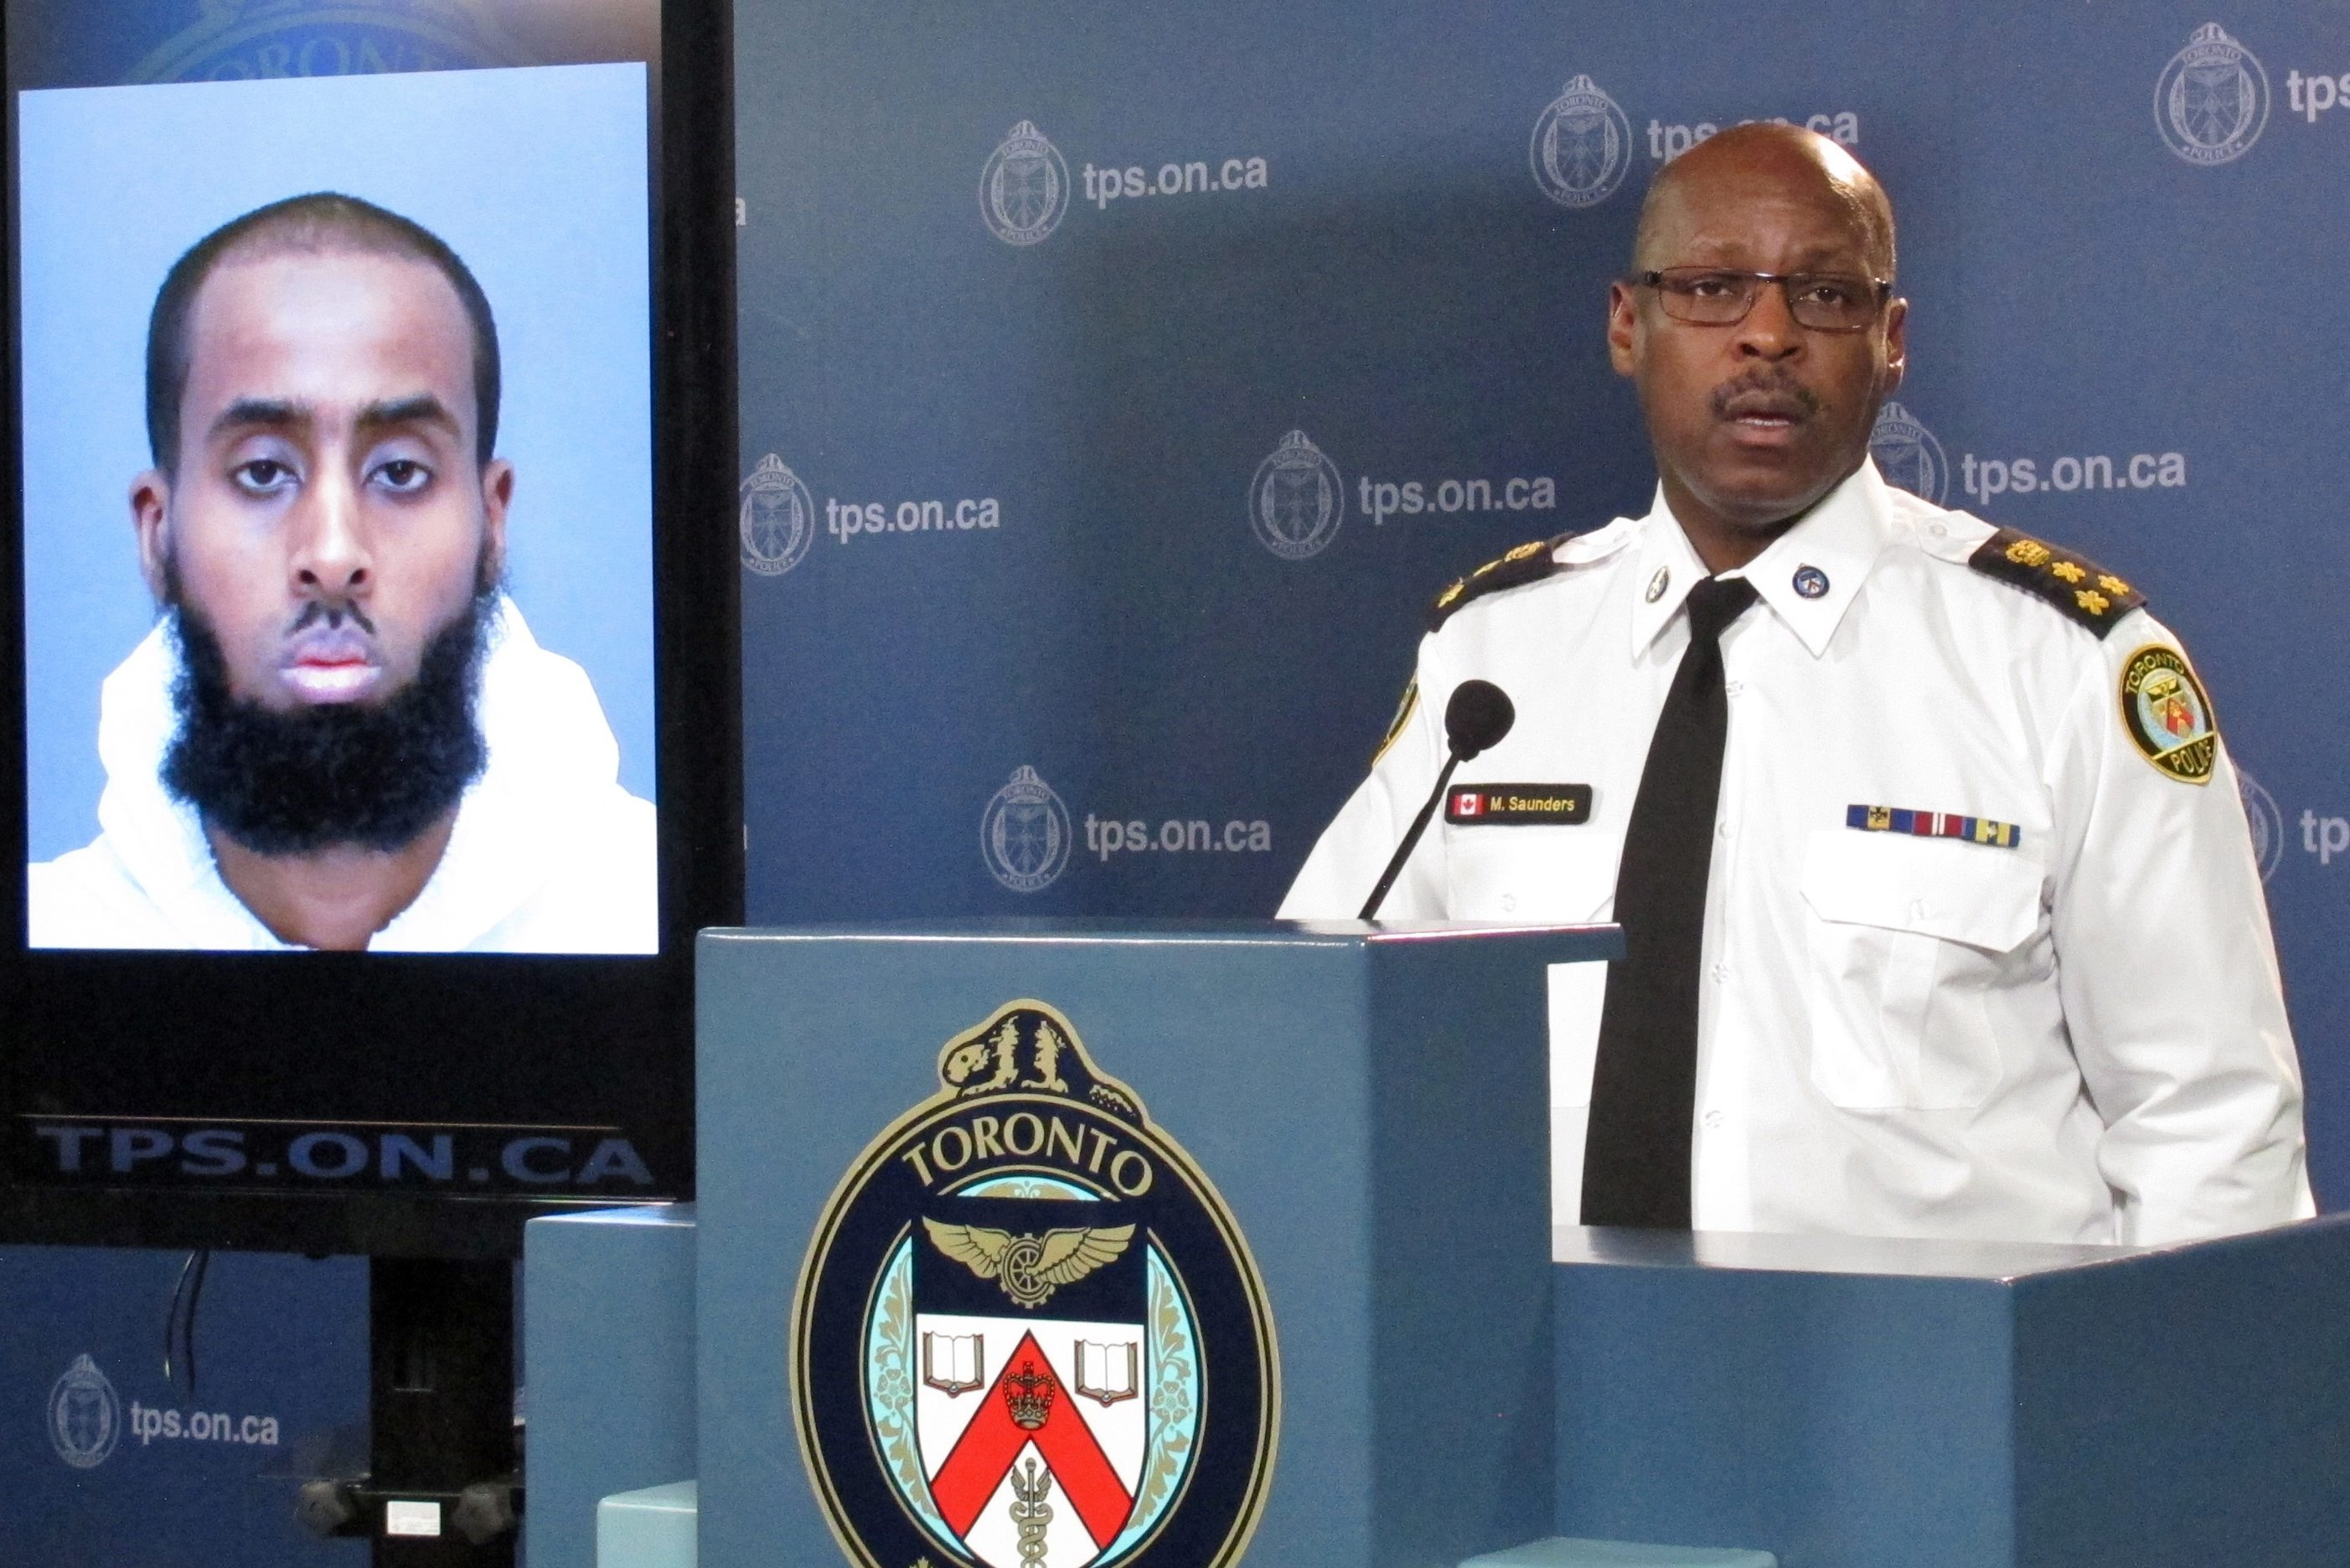 Chief Mark Saunders speaks about Ayanie Hassan Ali at a news conference in Toronto, on March 15, 2016.